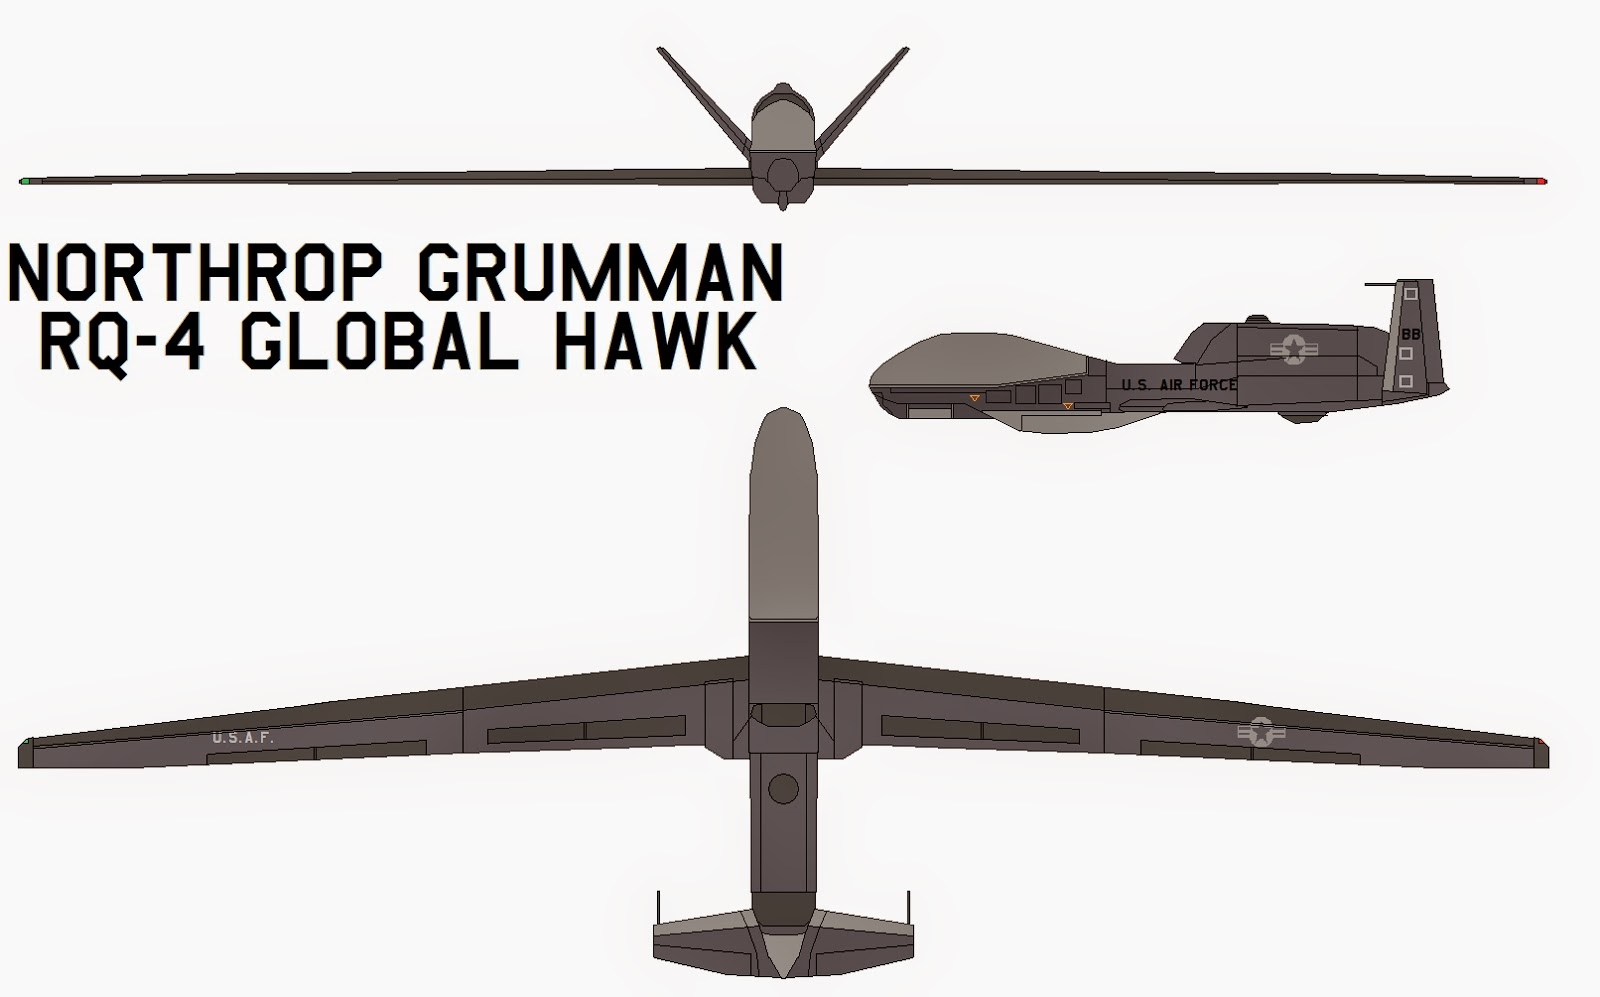 picture of drone aircraft with Rq 4 Global Hawk on F 35b Lightning Ii furthermore Tricopter 346708751 together with Ehang184 together with A Drone By Any Other Name What Are The Different Kinds Of Drones further Rq 4 Global Hawk.